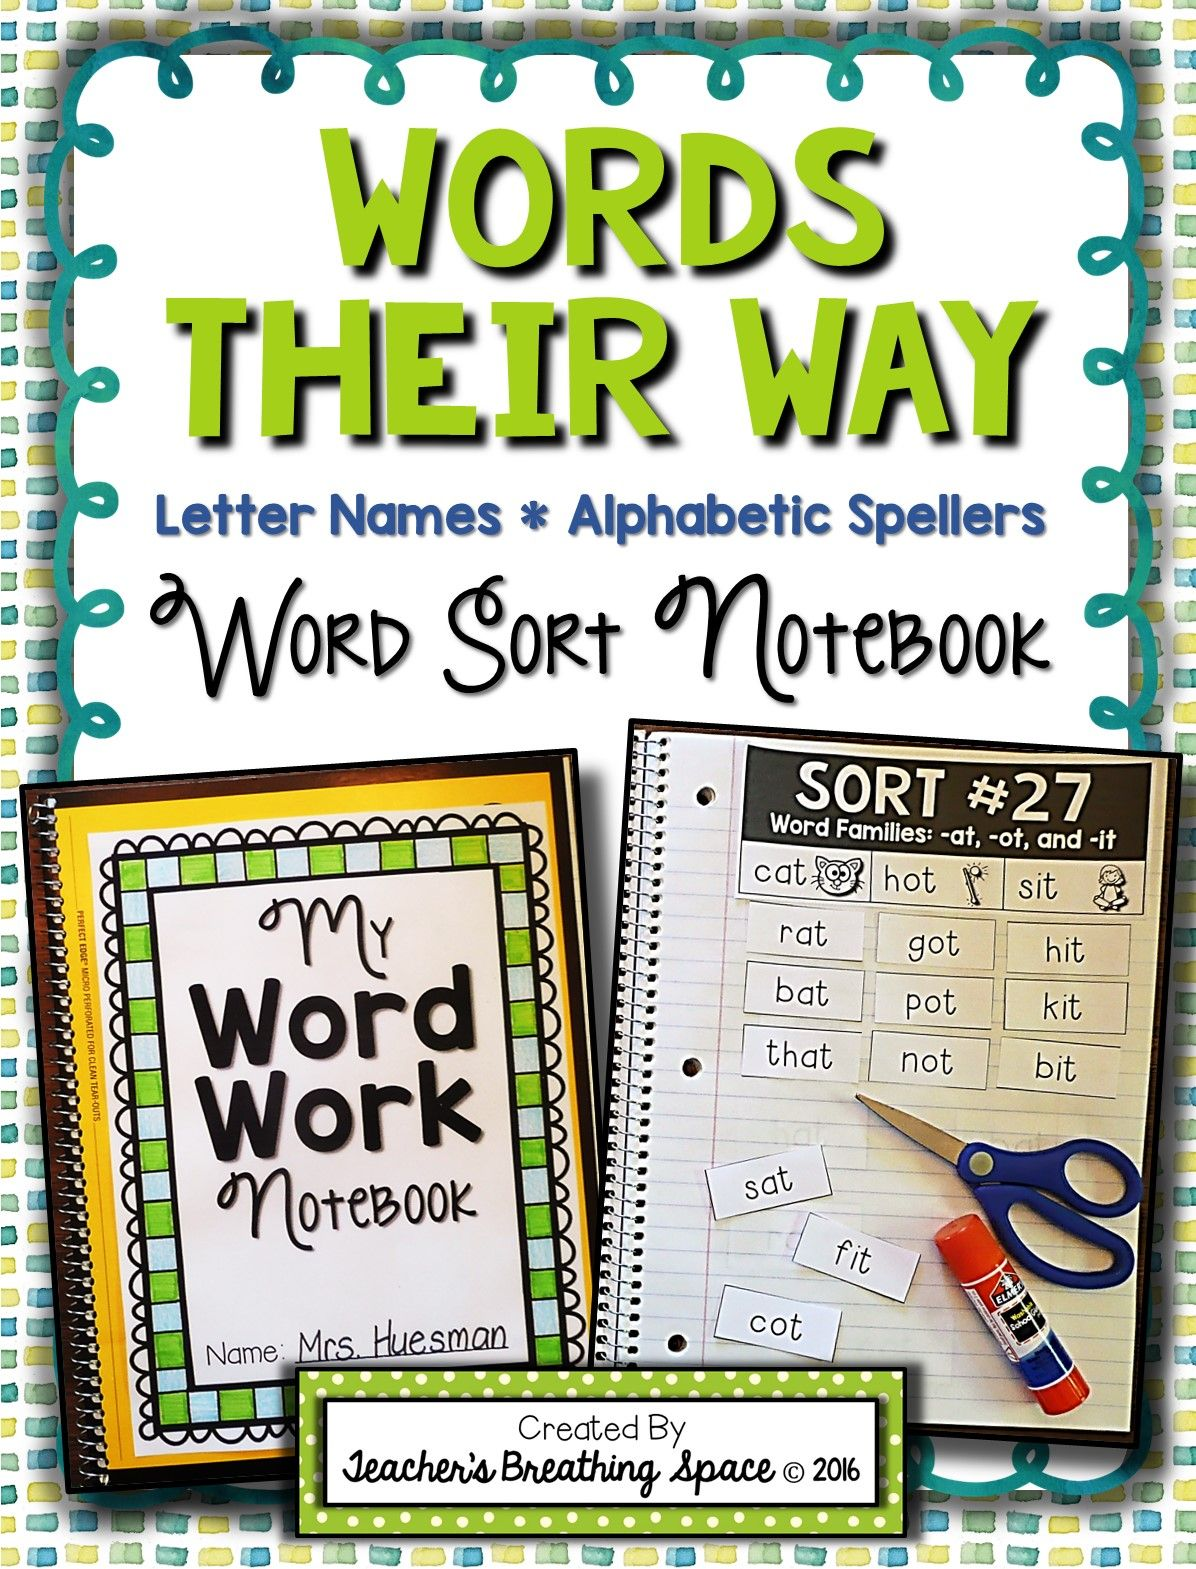 worksheet Words Their Way Worksheets how to organize and implement words their way resources included letter name alphabetic sorts 1 50 word sorting notebook